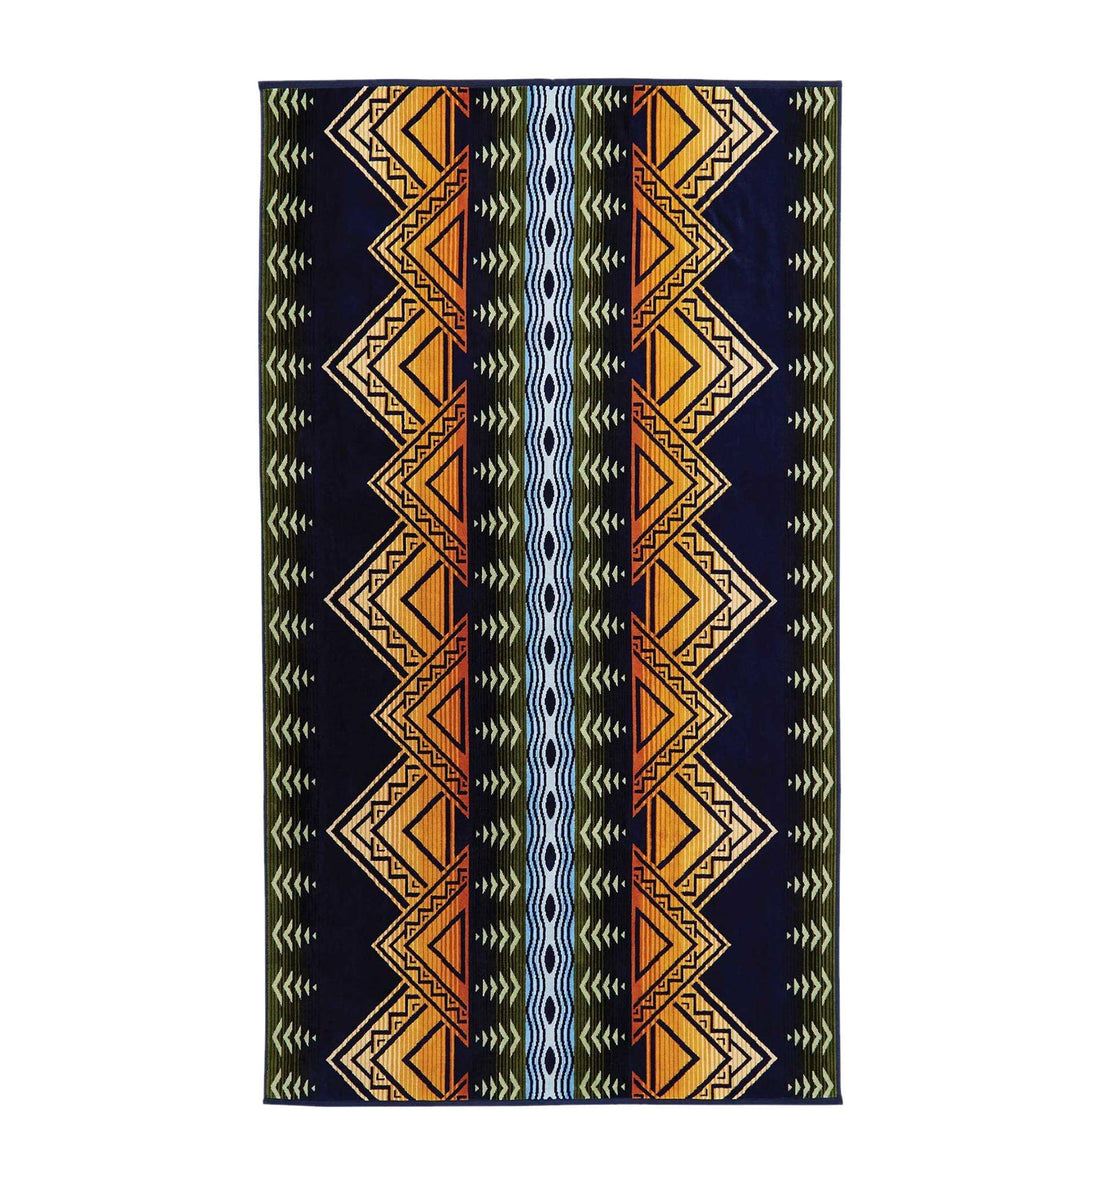 Pendleton Woolen Mills Oversized Jacquard Towel - American Treasure Midnight - Outdoor Living/Travel - Iron and Resin